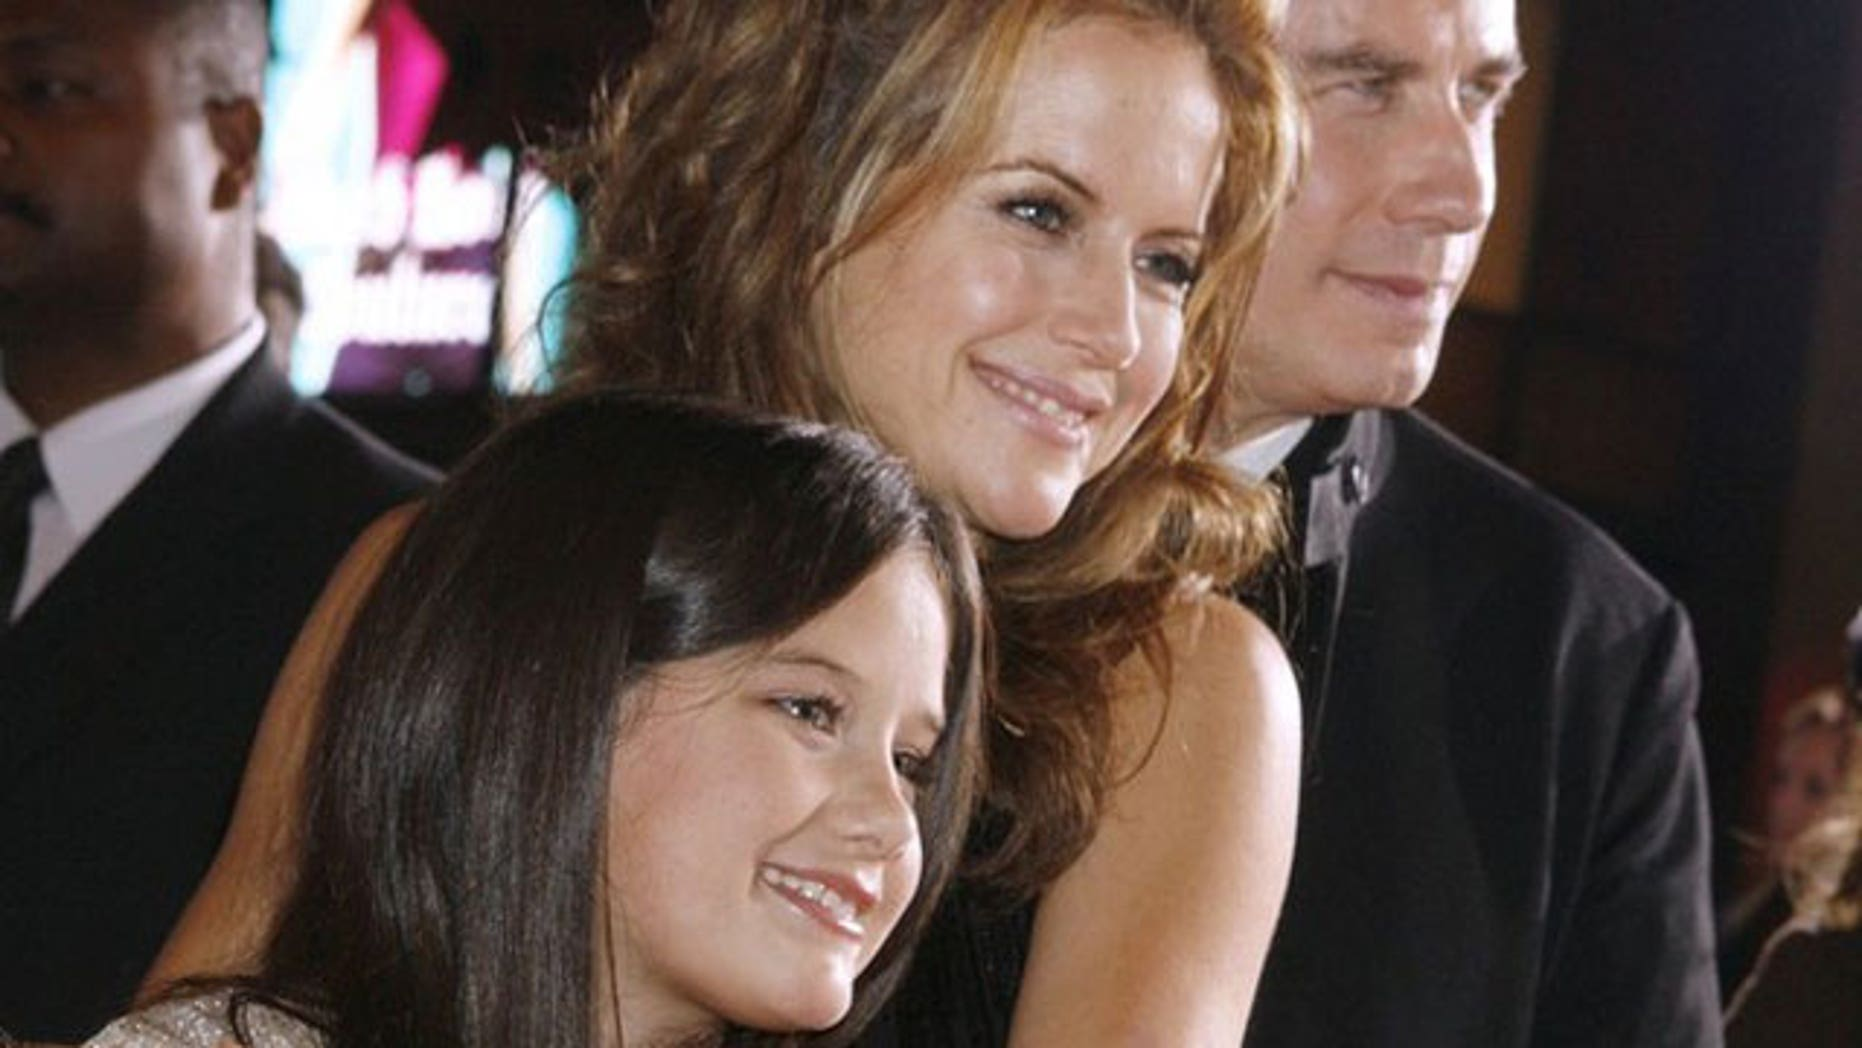 """Nov. 9: Actor John Travolta (R) and wife Kelly Preston pose with their daughter Ella Bleu Travolta (L) at the premiere of their new film """"Old Dogs"""" in Hollywood."""